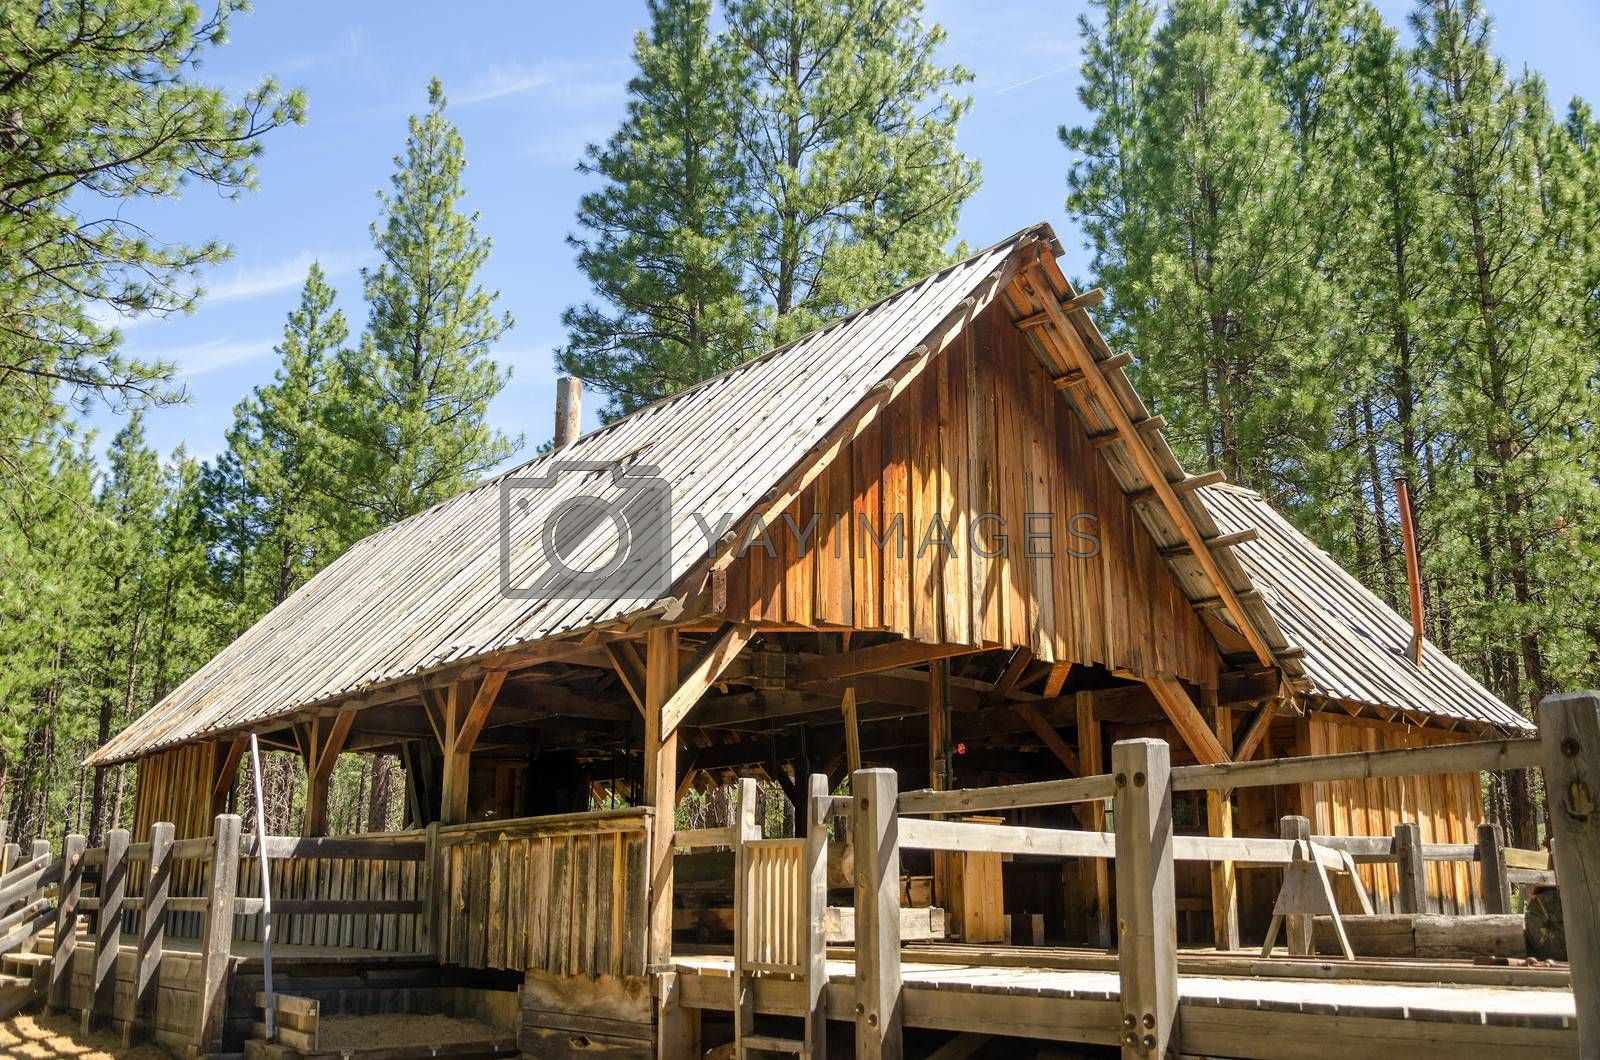 Old wooden lumber mill in Bend, Oregon